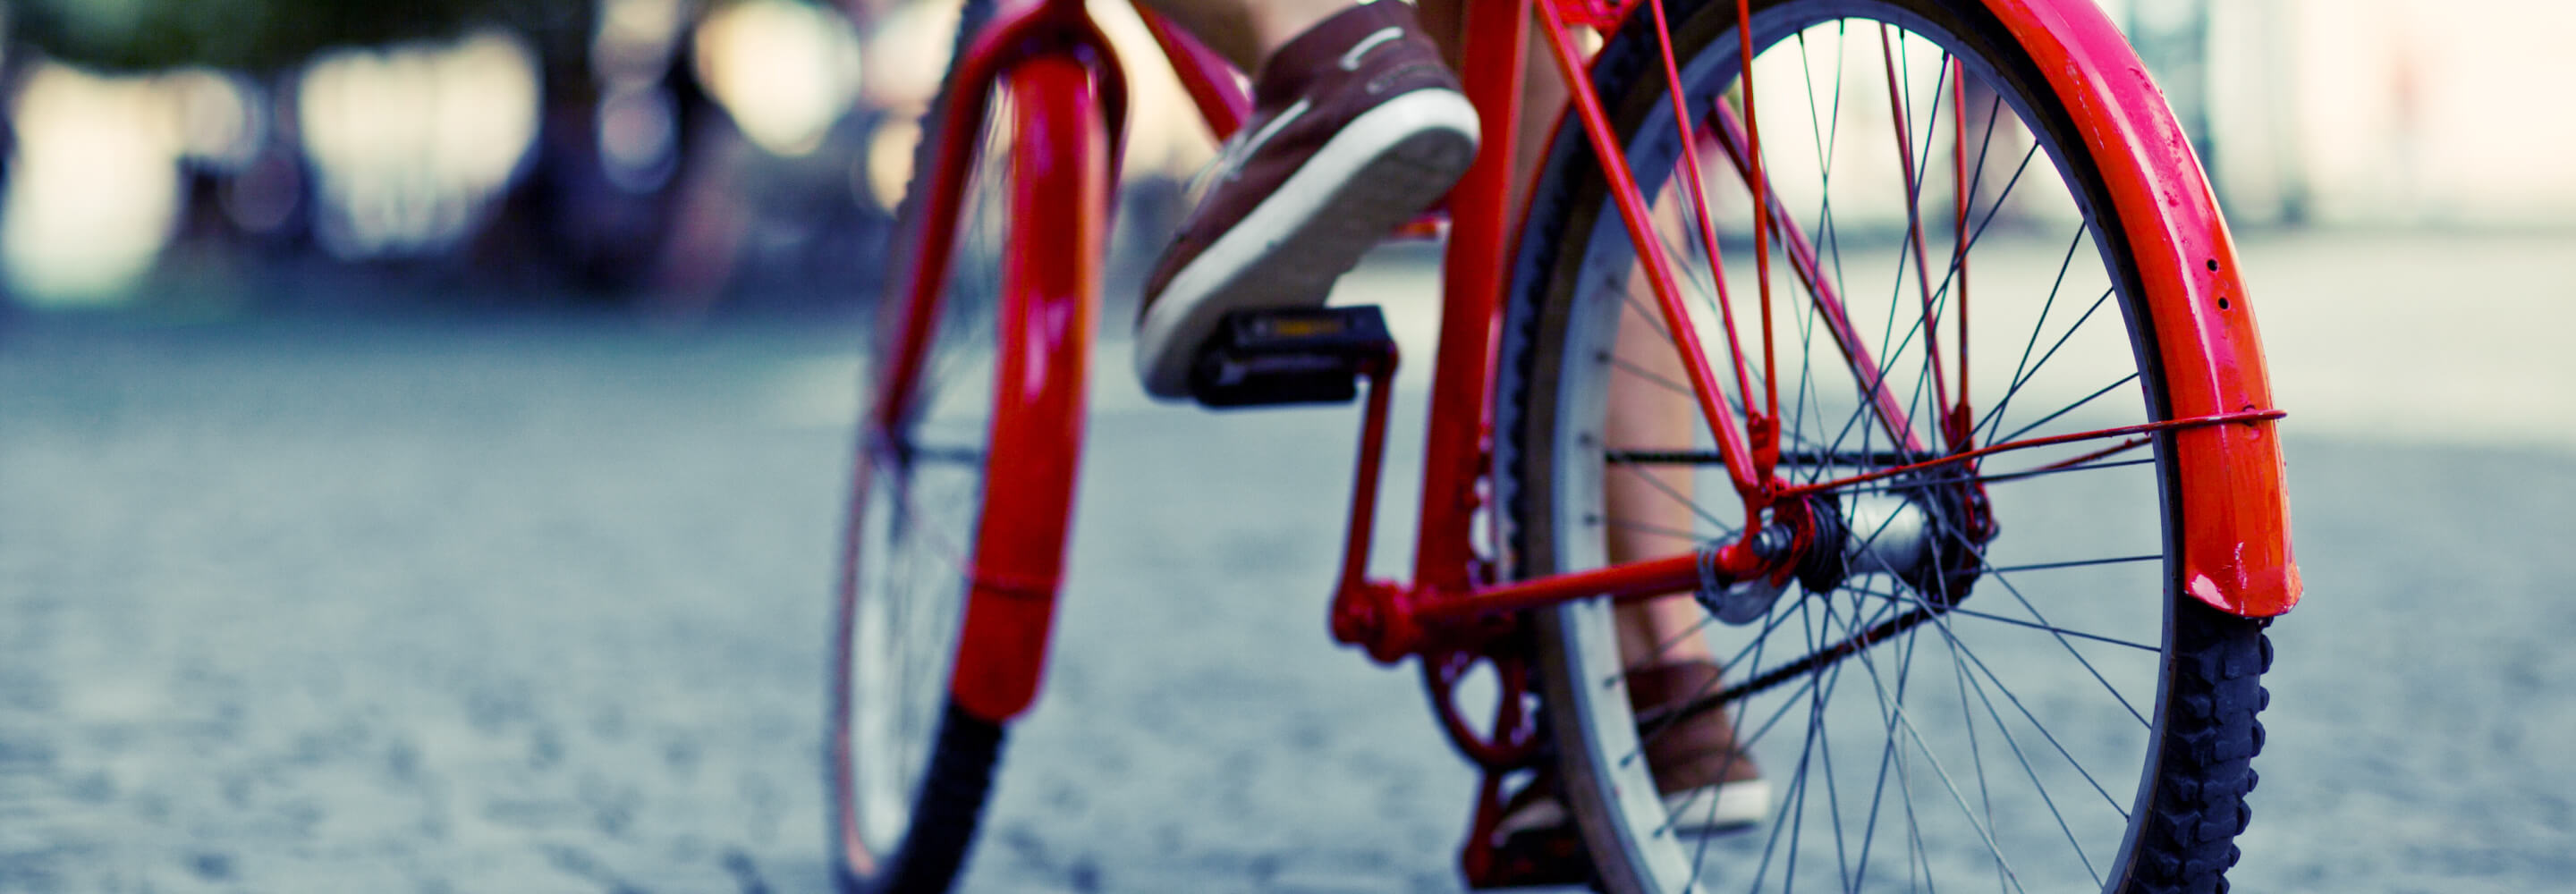 Ralli Ltd: Should Cyclists owe a greater duty of care to pedestrians and those around them? Banner